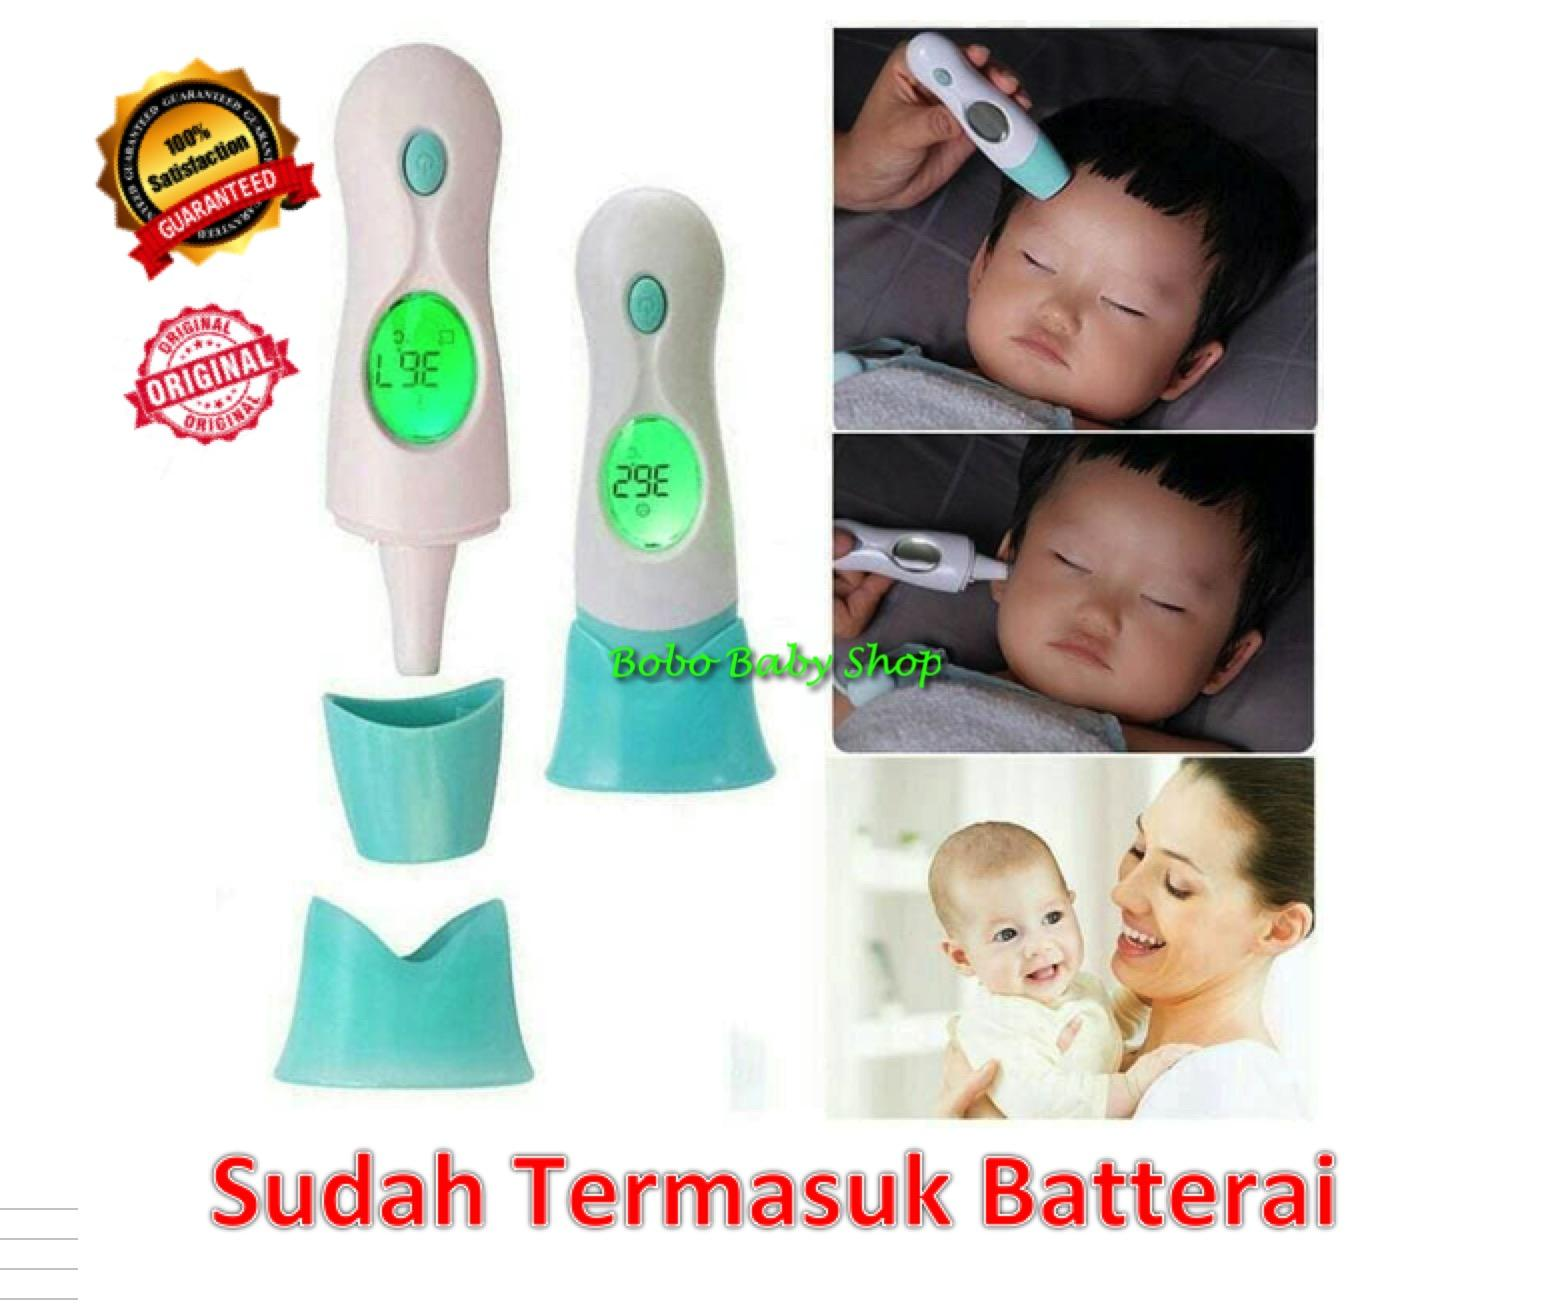 Thermometer Digital Baby It-903 Termometer 8 In 1 Anak Dan Bayi By Bobo Baby Shops.